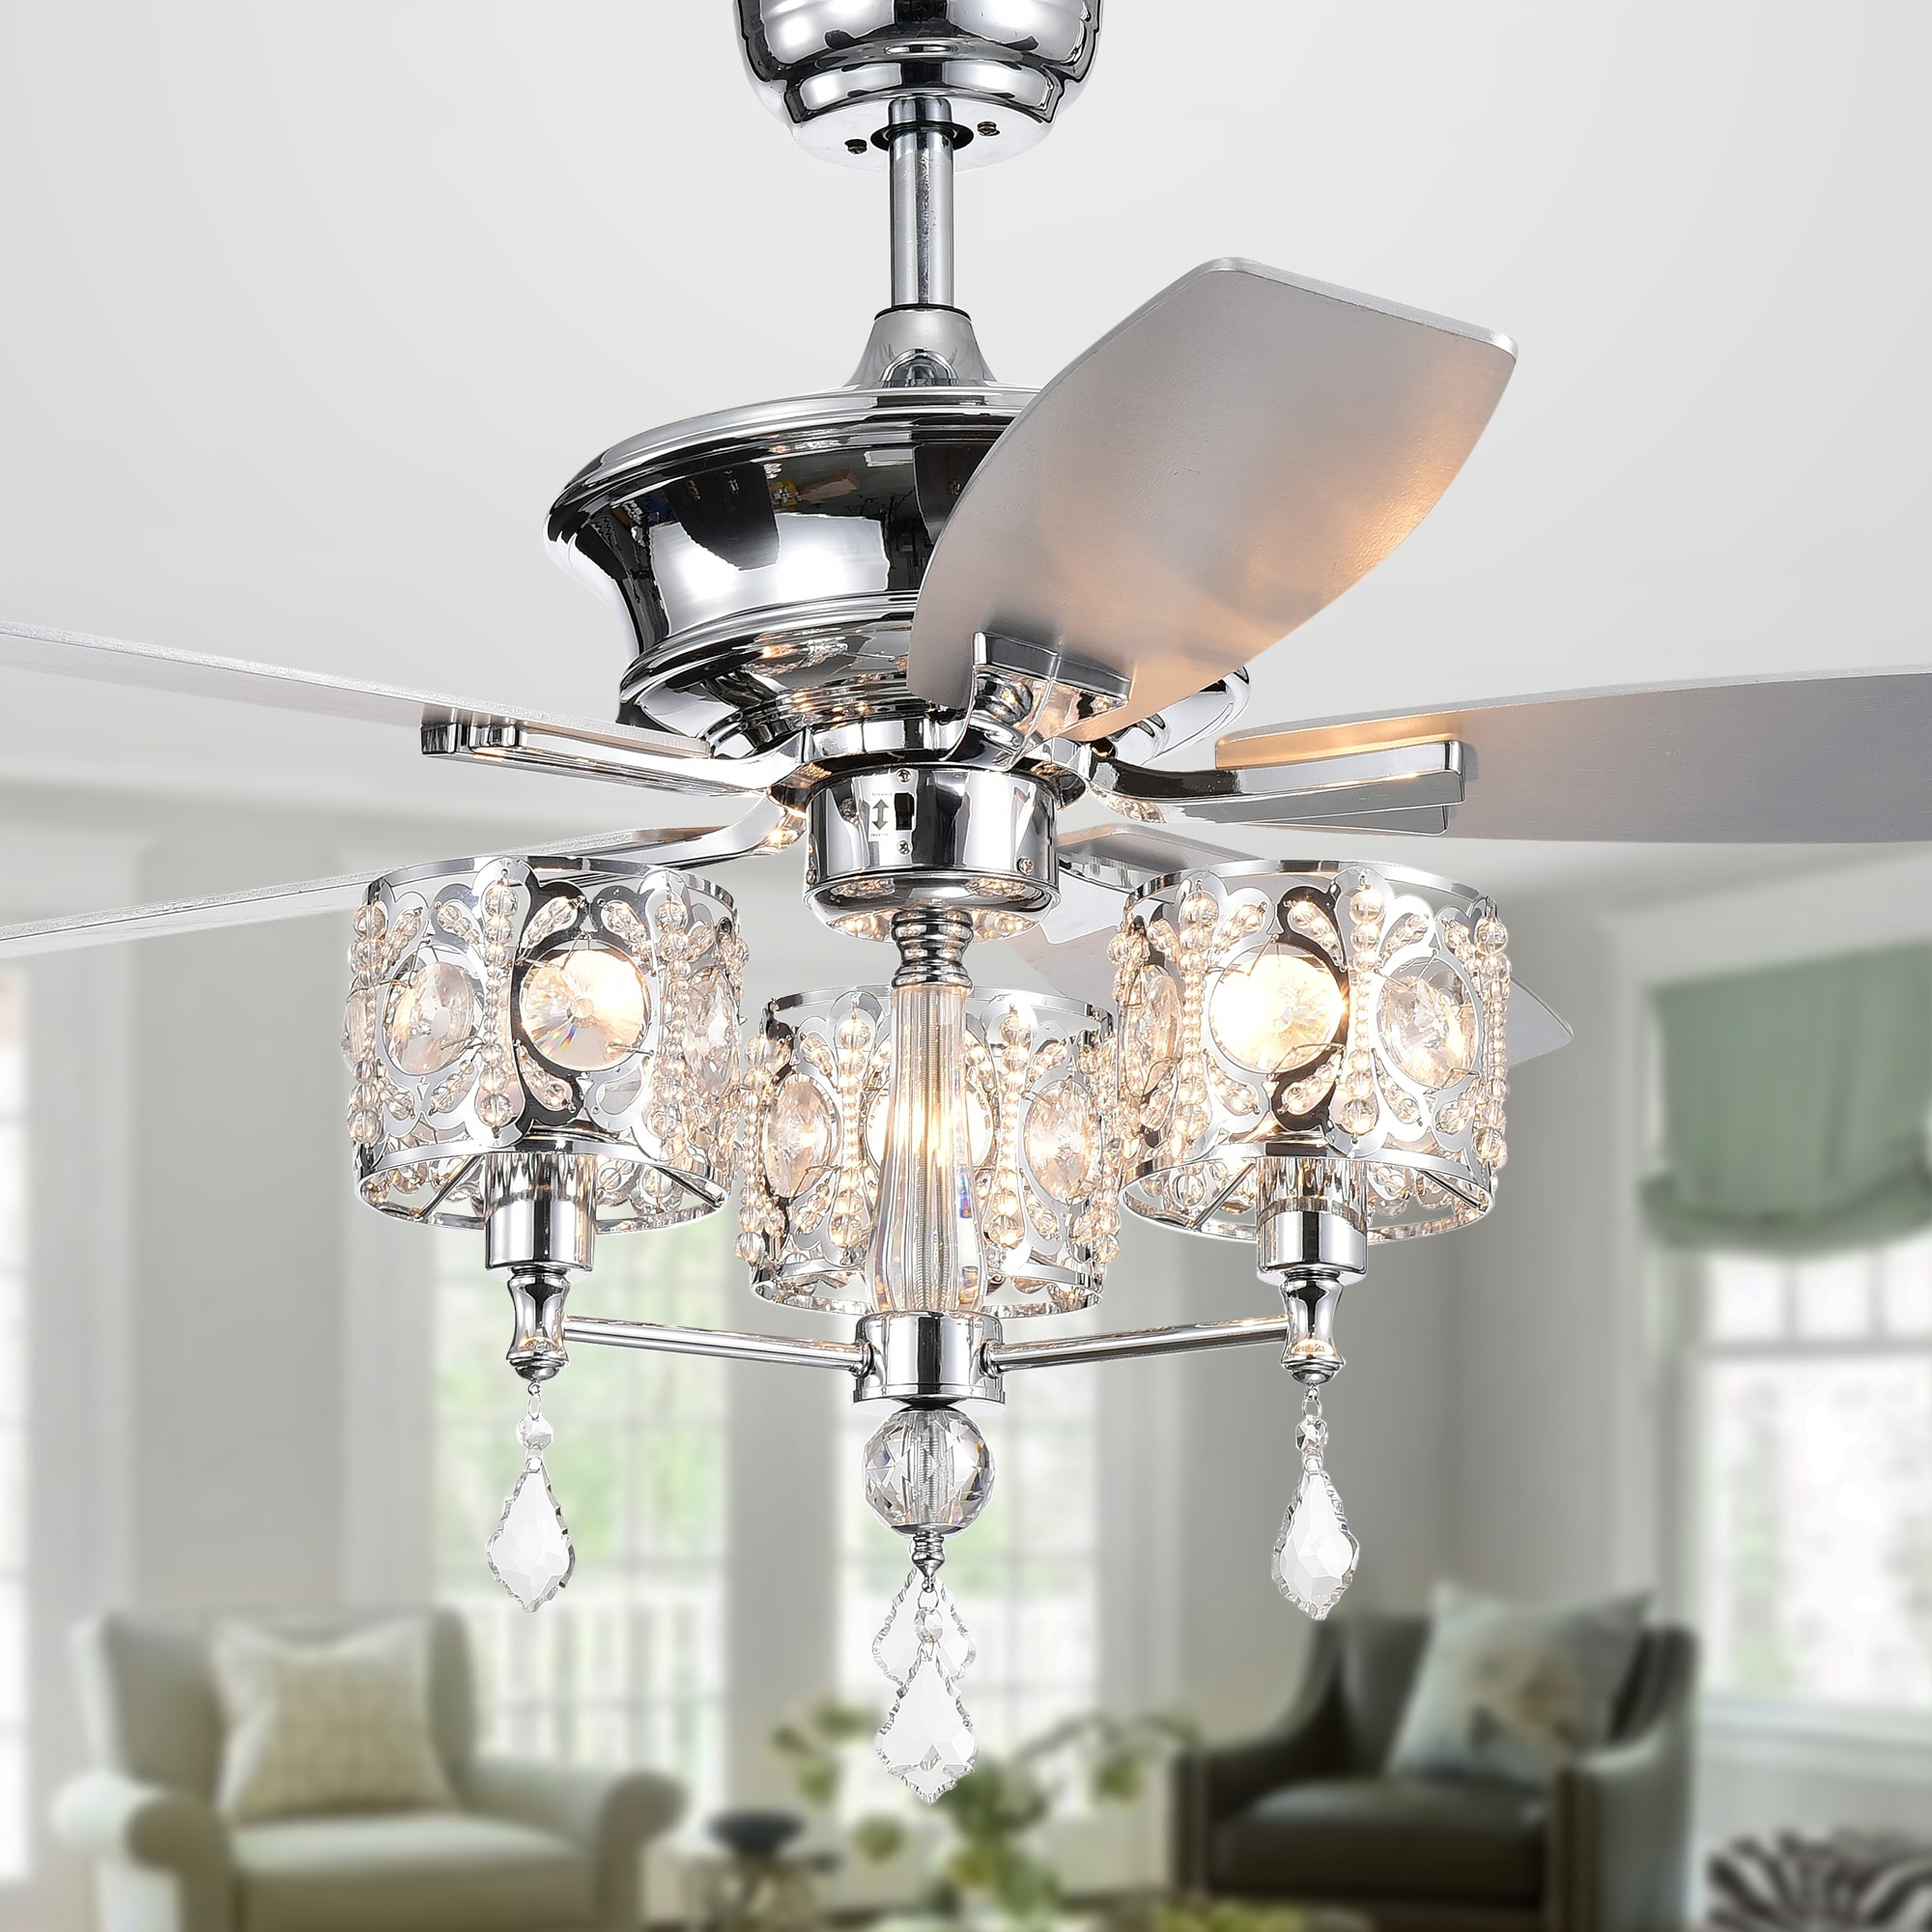 Shop Miramis 52 Inch Chrome Ceiling Fan With Crystal Chalice Chandelier Overstock 23610418,Best Natural Mosquito Repellent For Yard